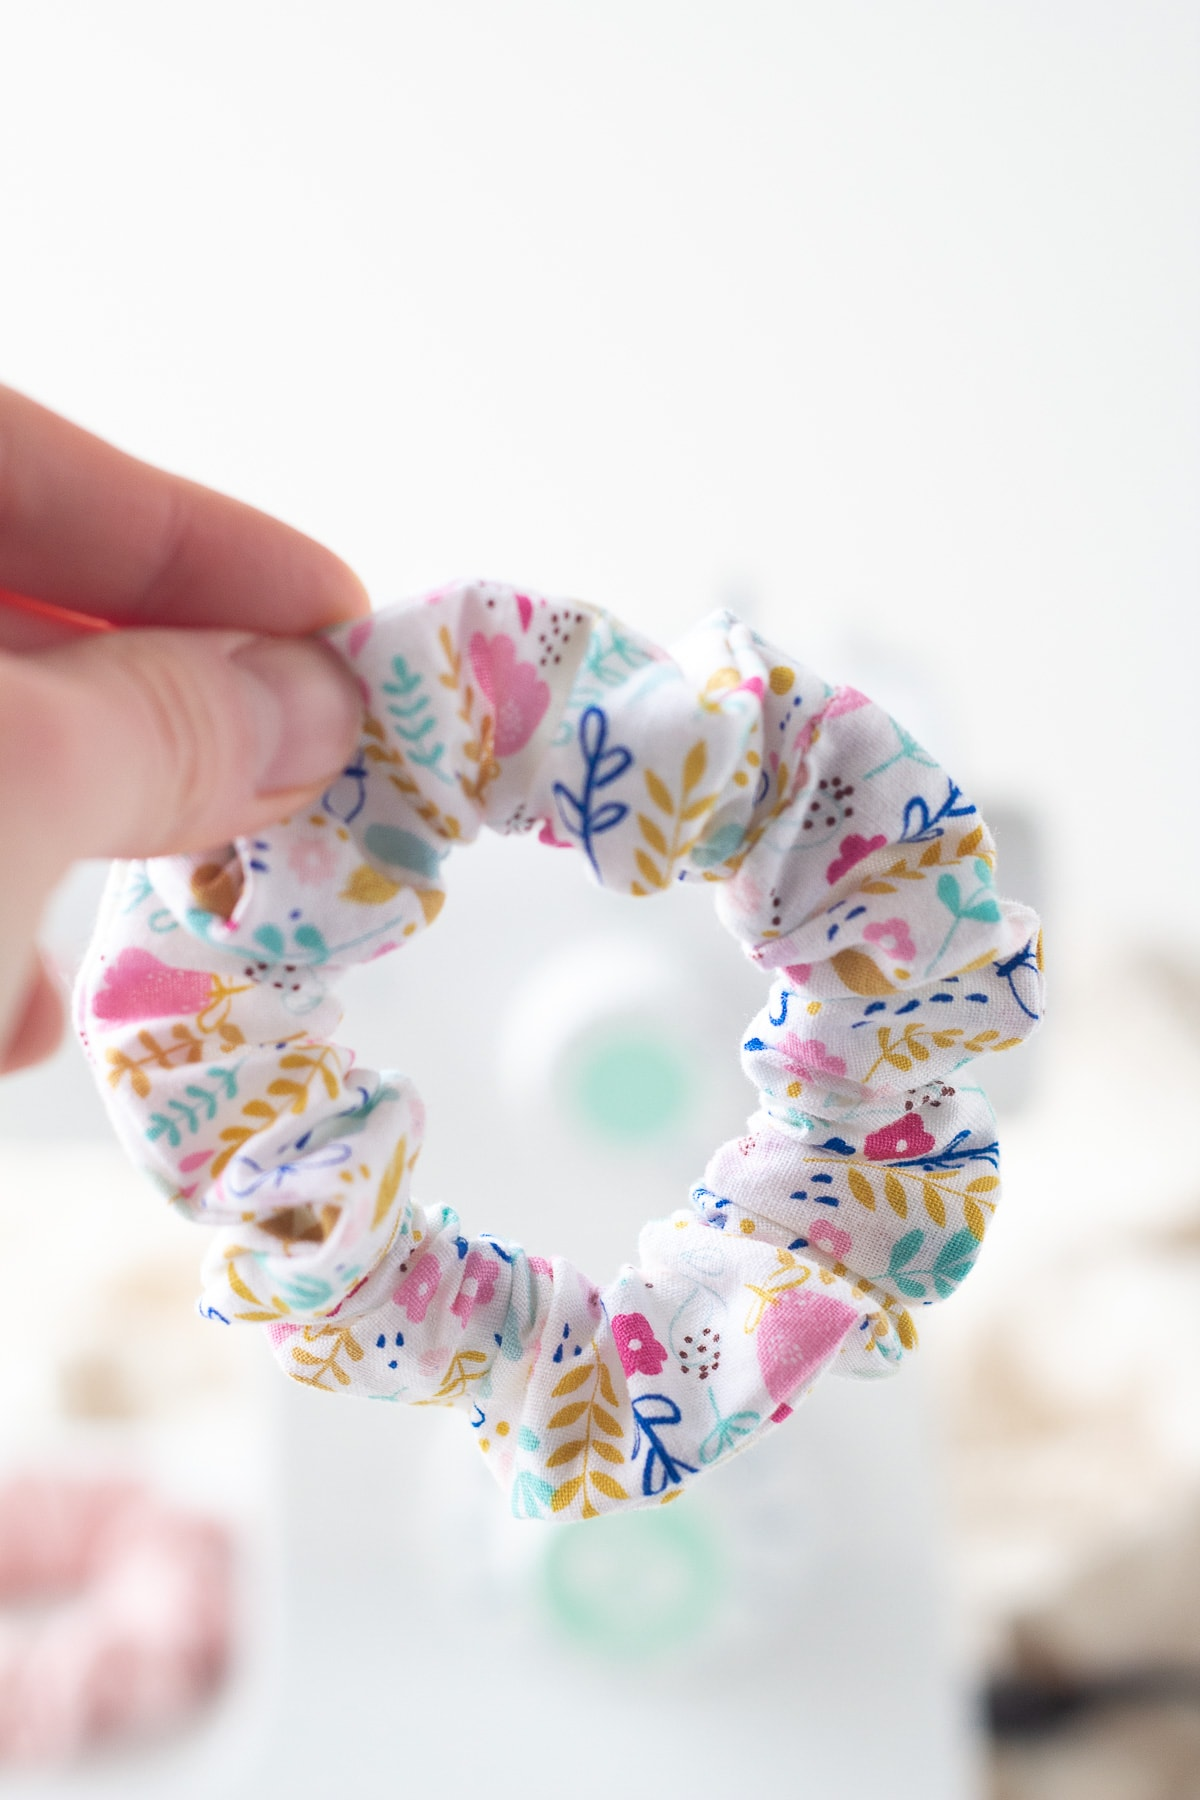 Holding a handmade colorful floral scrunchie.